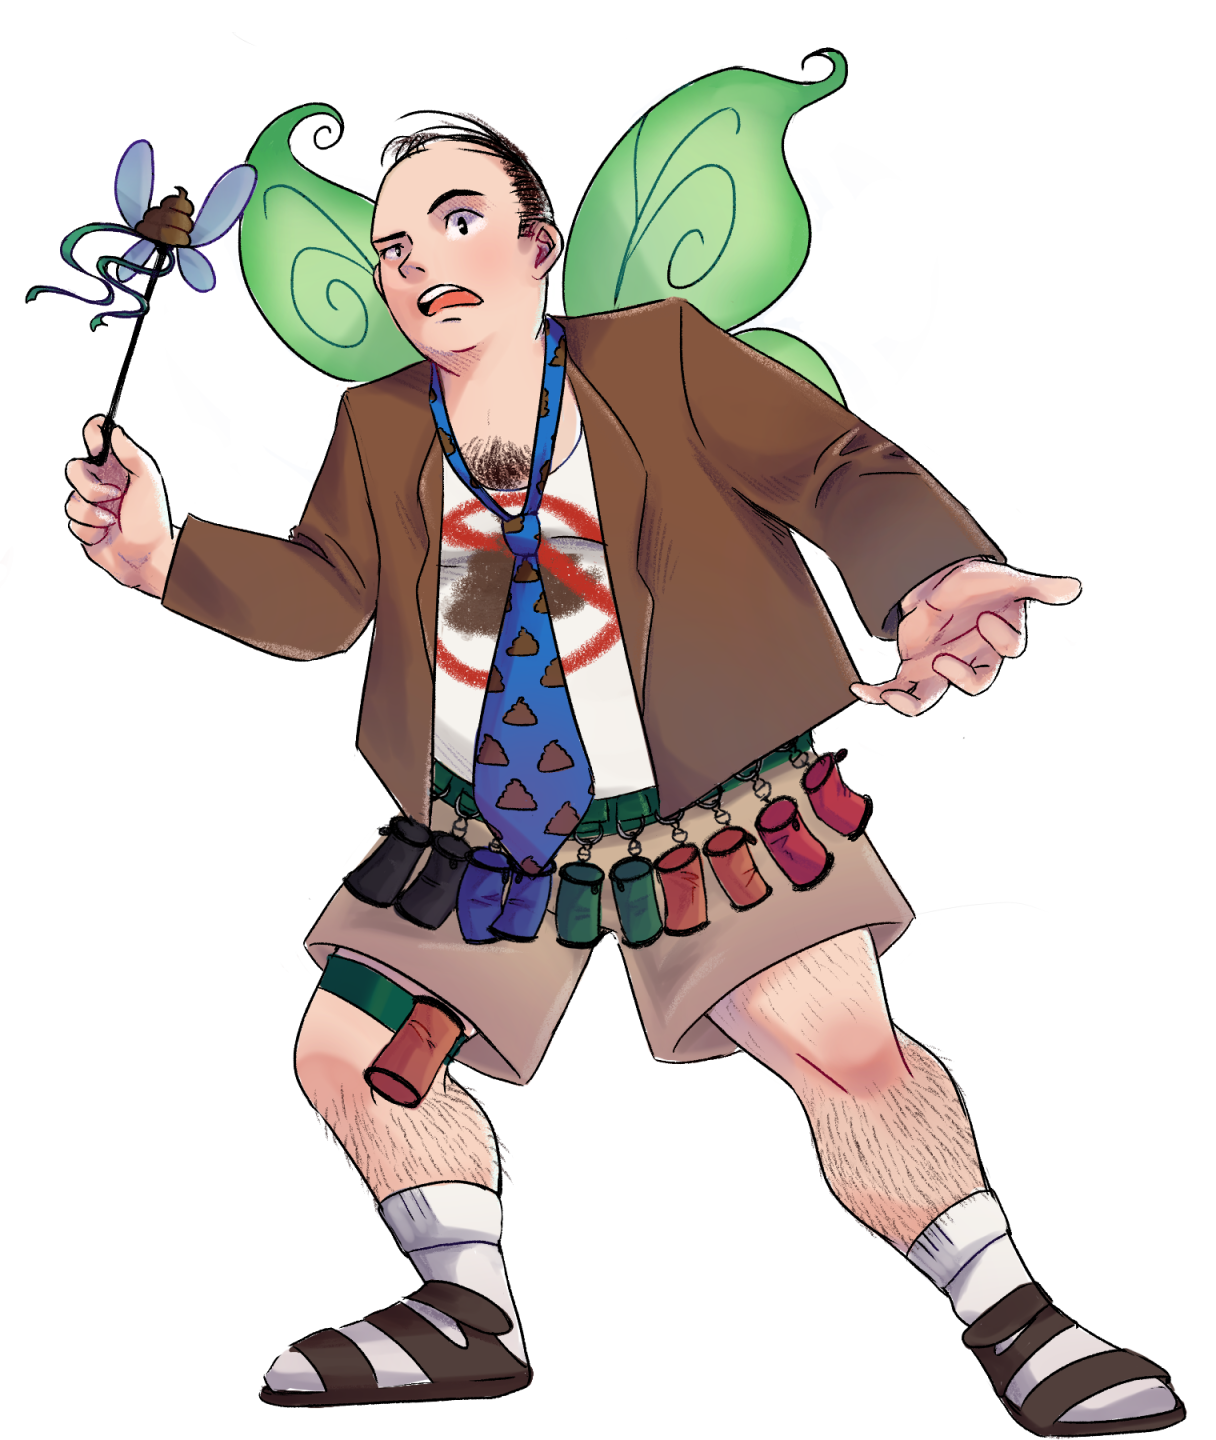 Professor Poop Fairy ready to give a lesson.